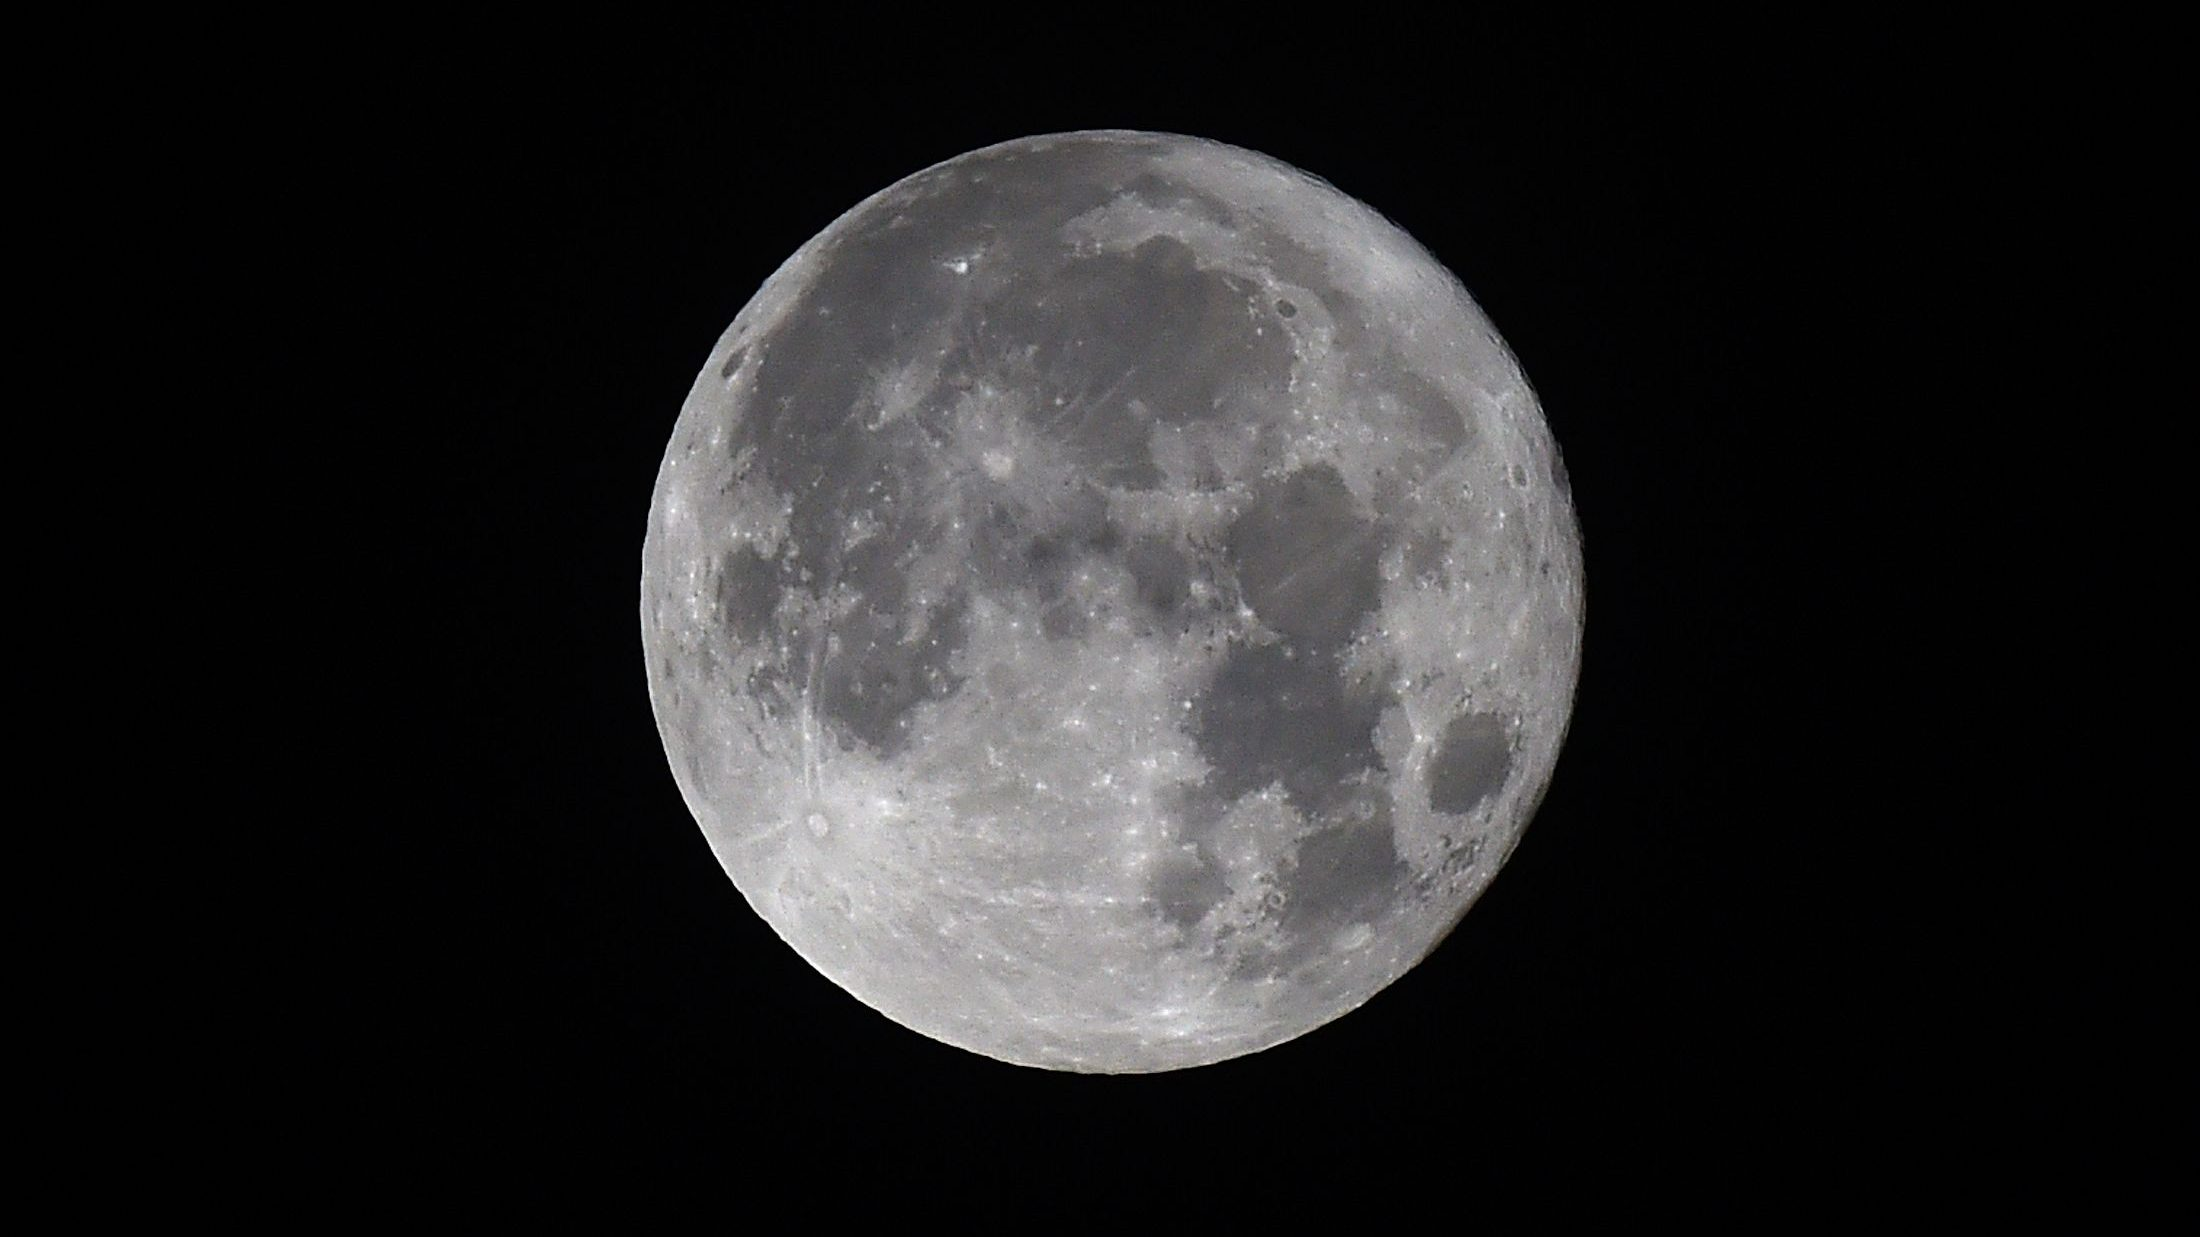 Picture of the full moon tonight